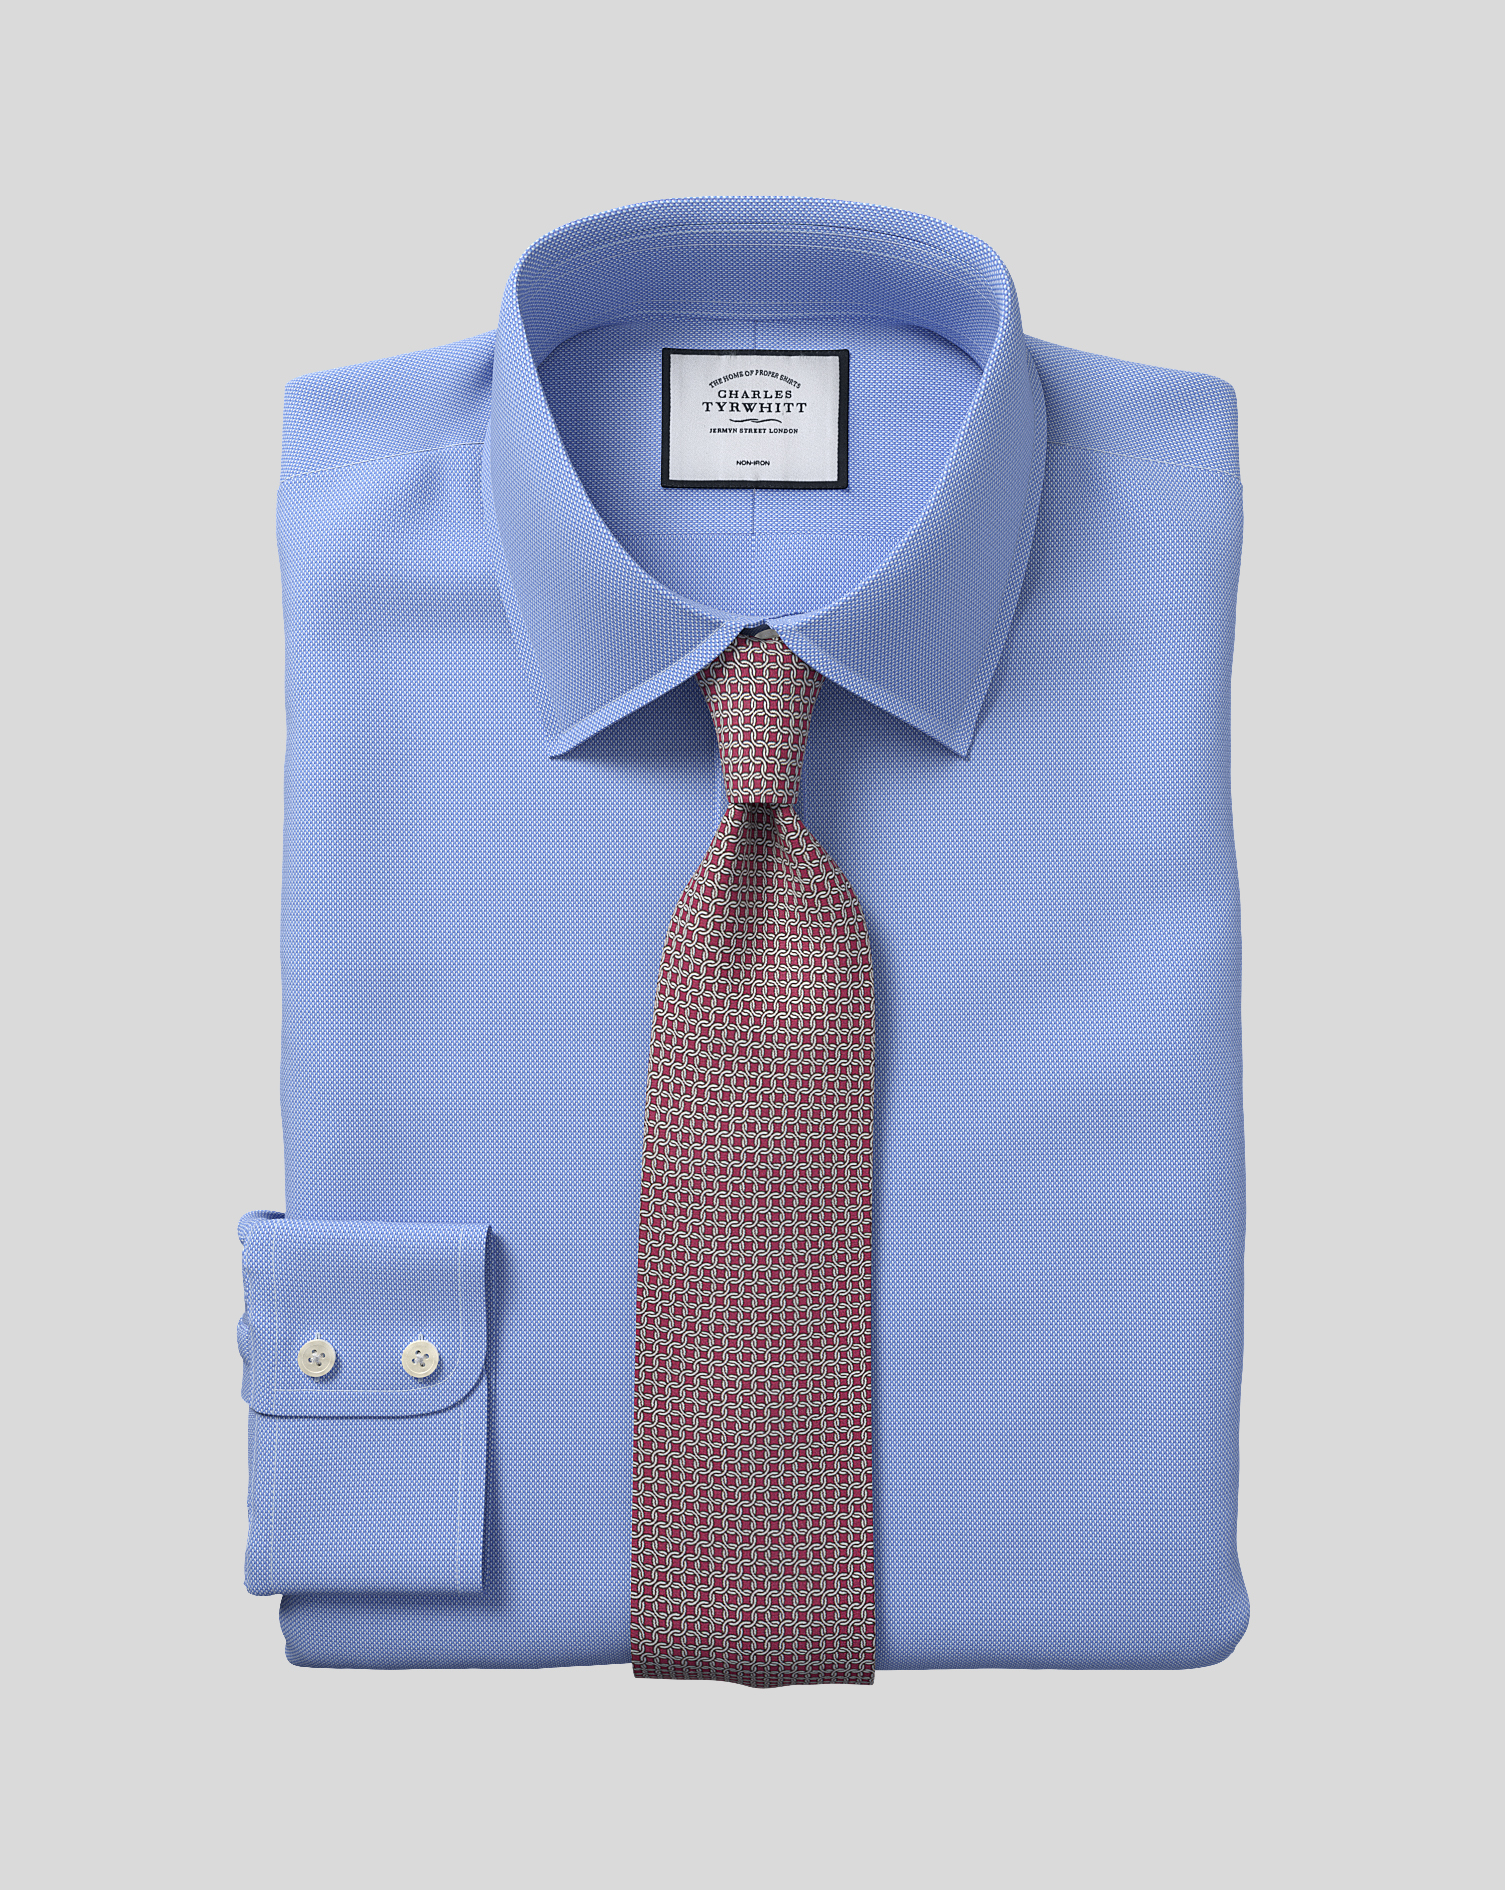 Classic Fit Non-Iron Blue Royal Panama Cotton Formal Shirt Single Cuff Size 15/33 by Charles Tyrwhit